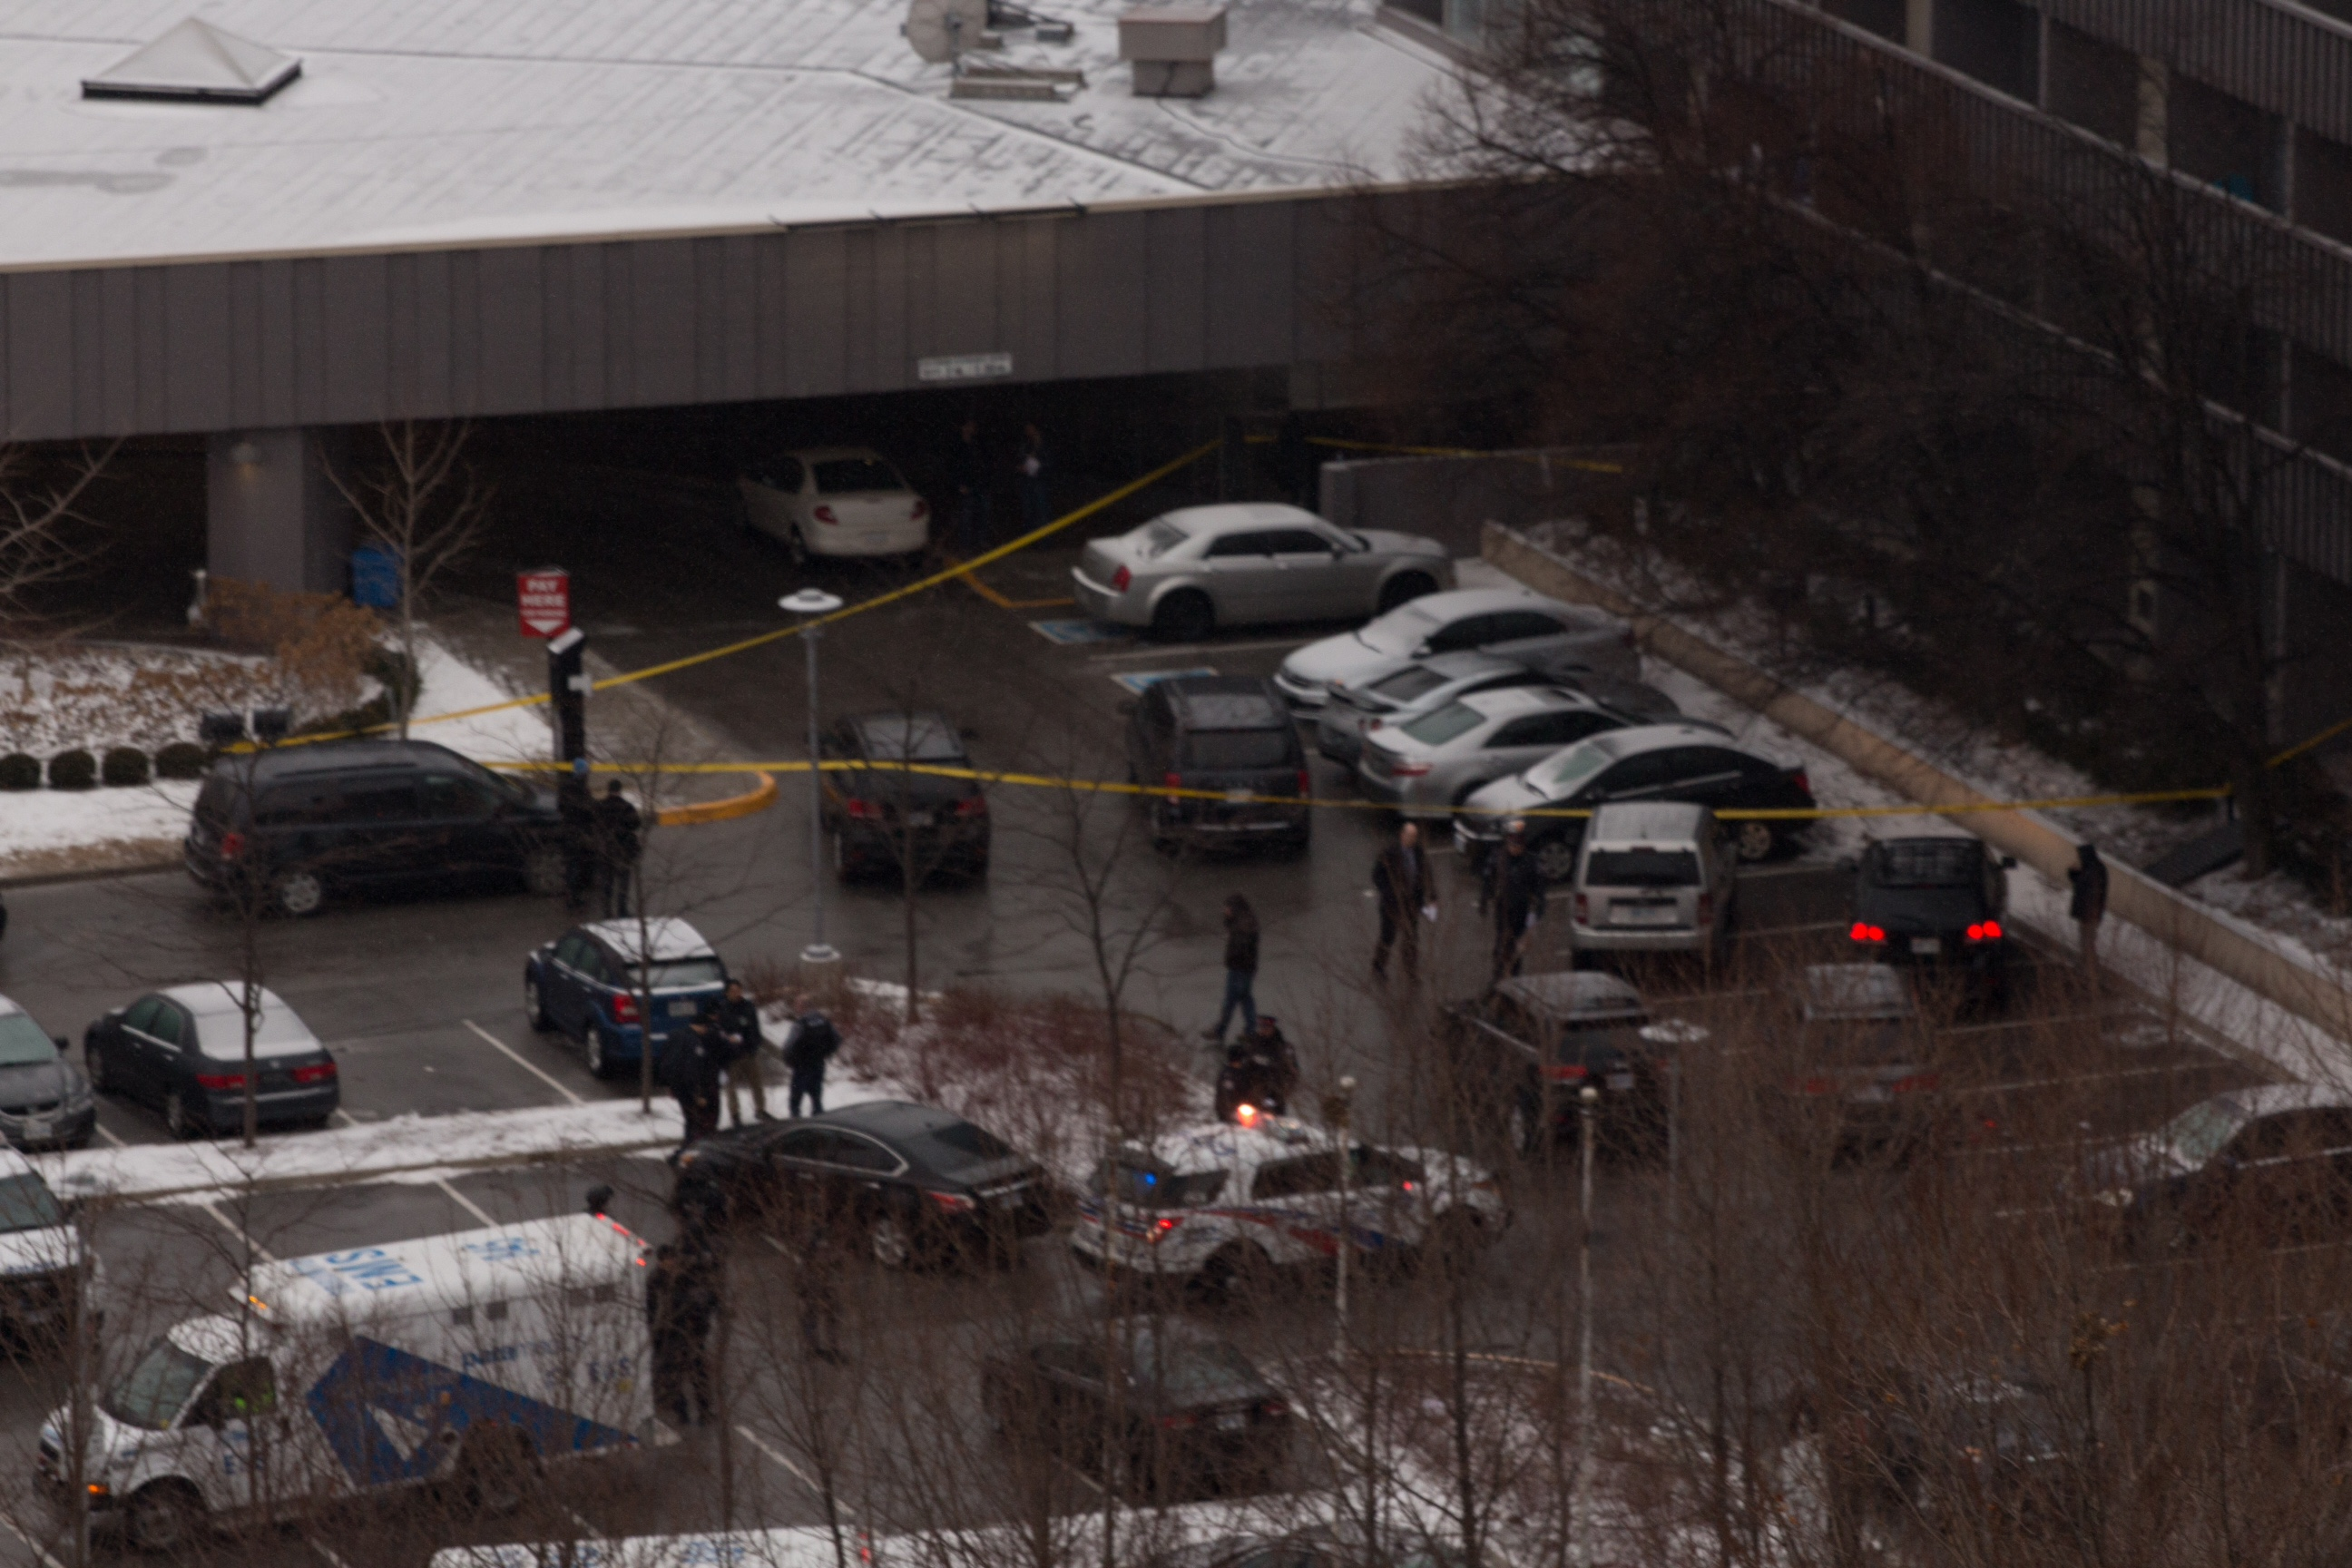 SIU investigating Don Valley Suites shooting